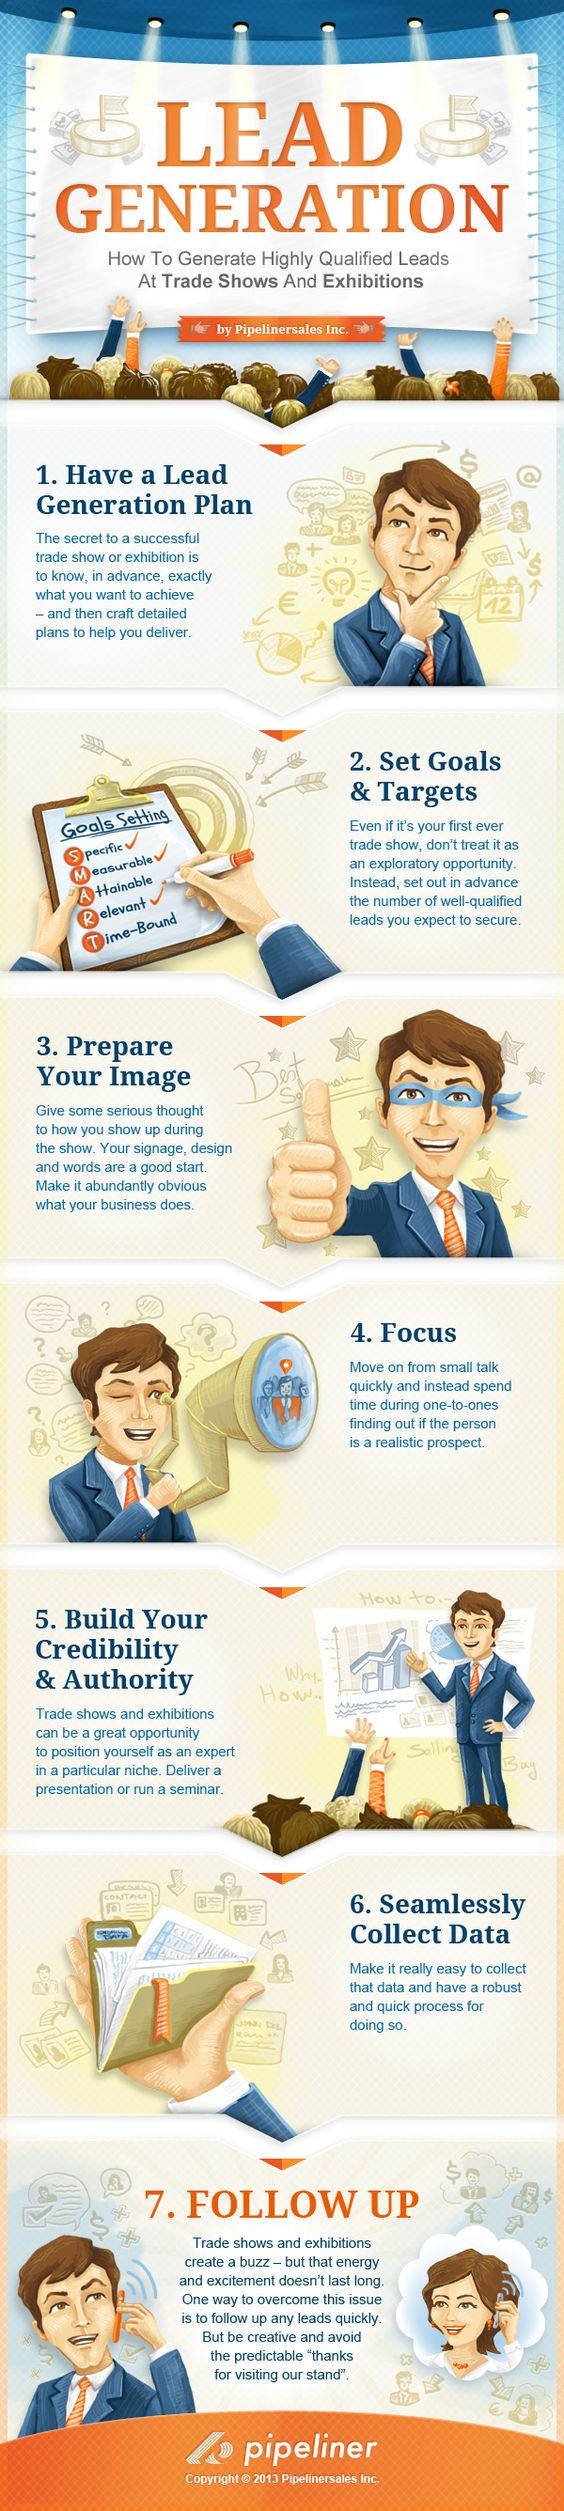 Infographic - How to Generate Highly Qualified Leads at Trade Shows and Exhibitions by Pipeliner